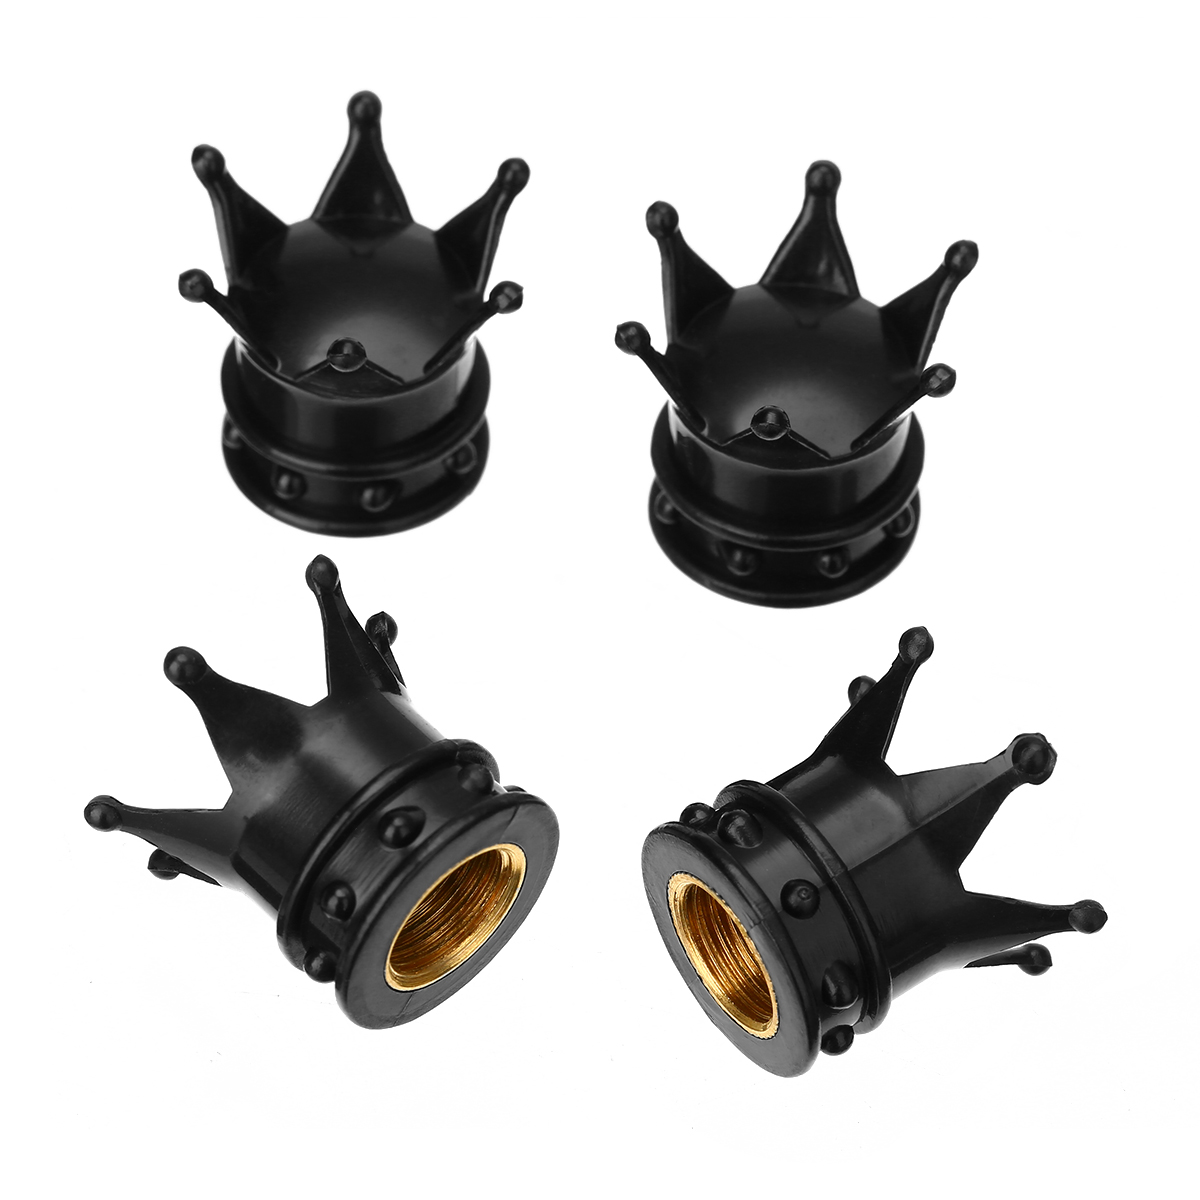 4pcs Black Crown Aluminum Car Wheel Tyre Tire Air Valve Stem Cap Dust Cover For Car Truck Bike Motorcycle ATV